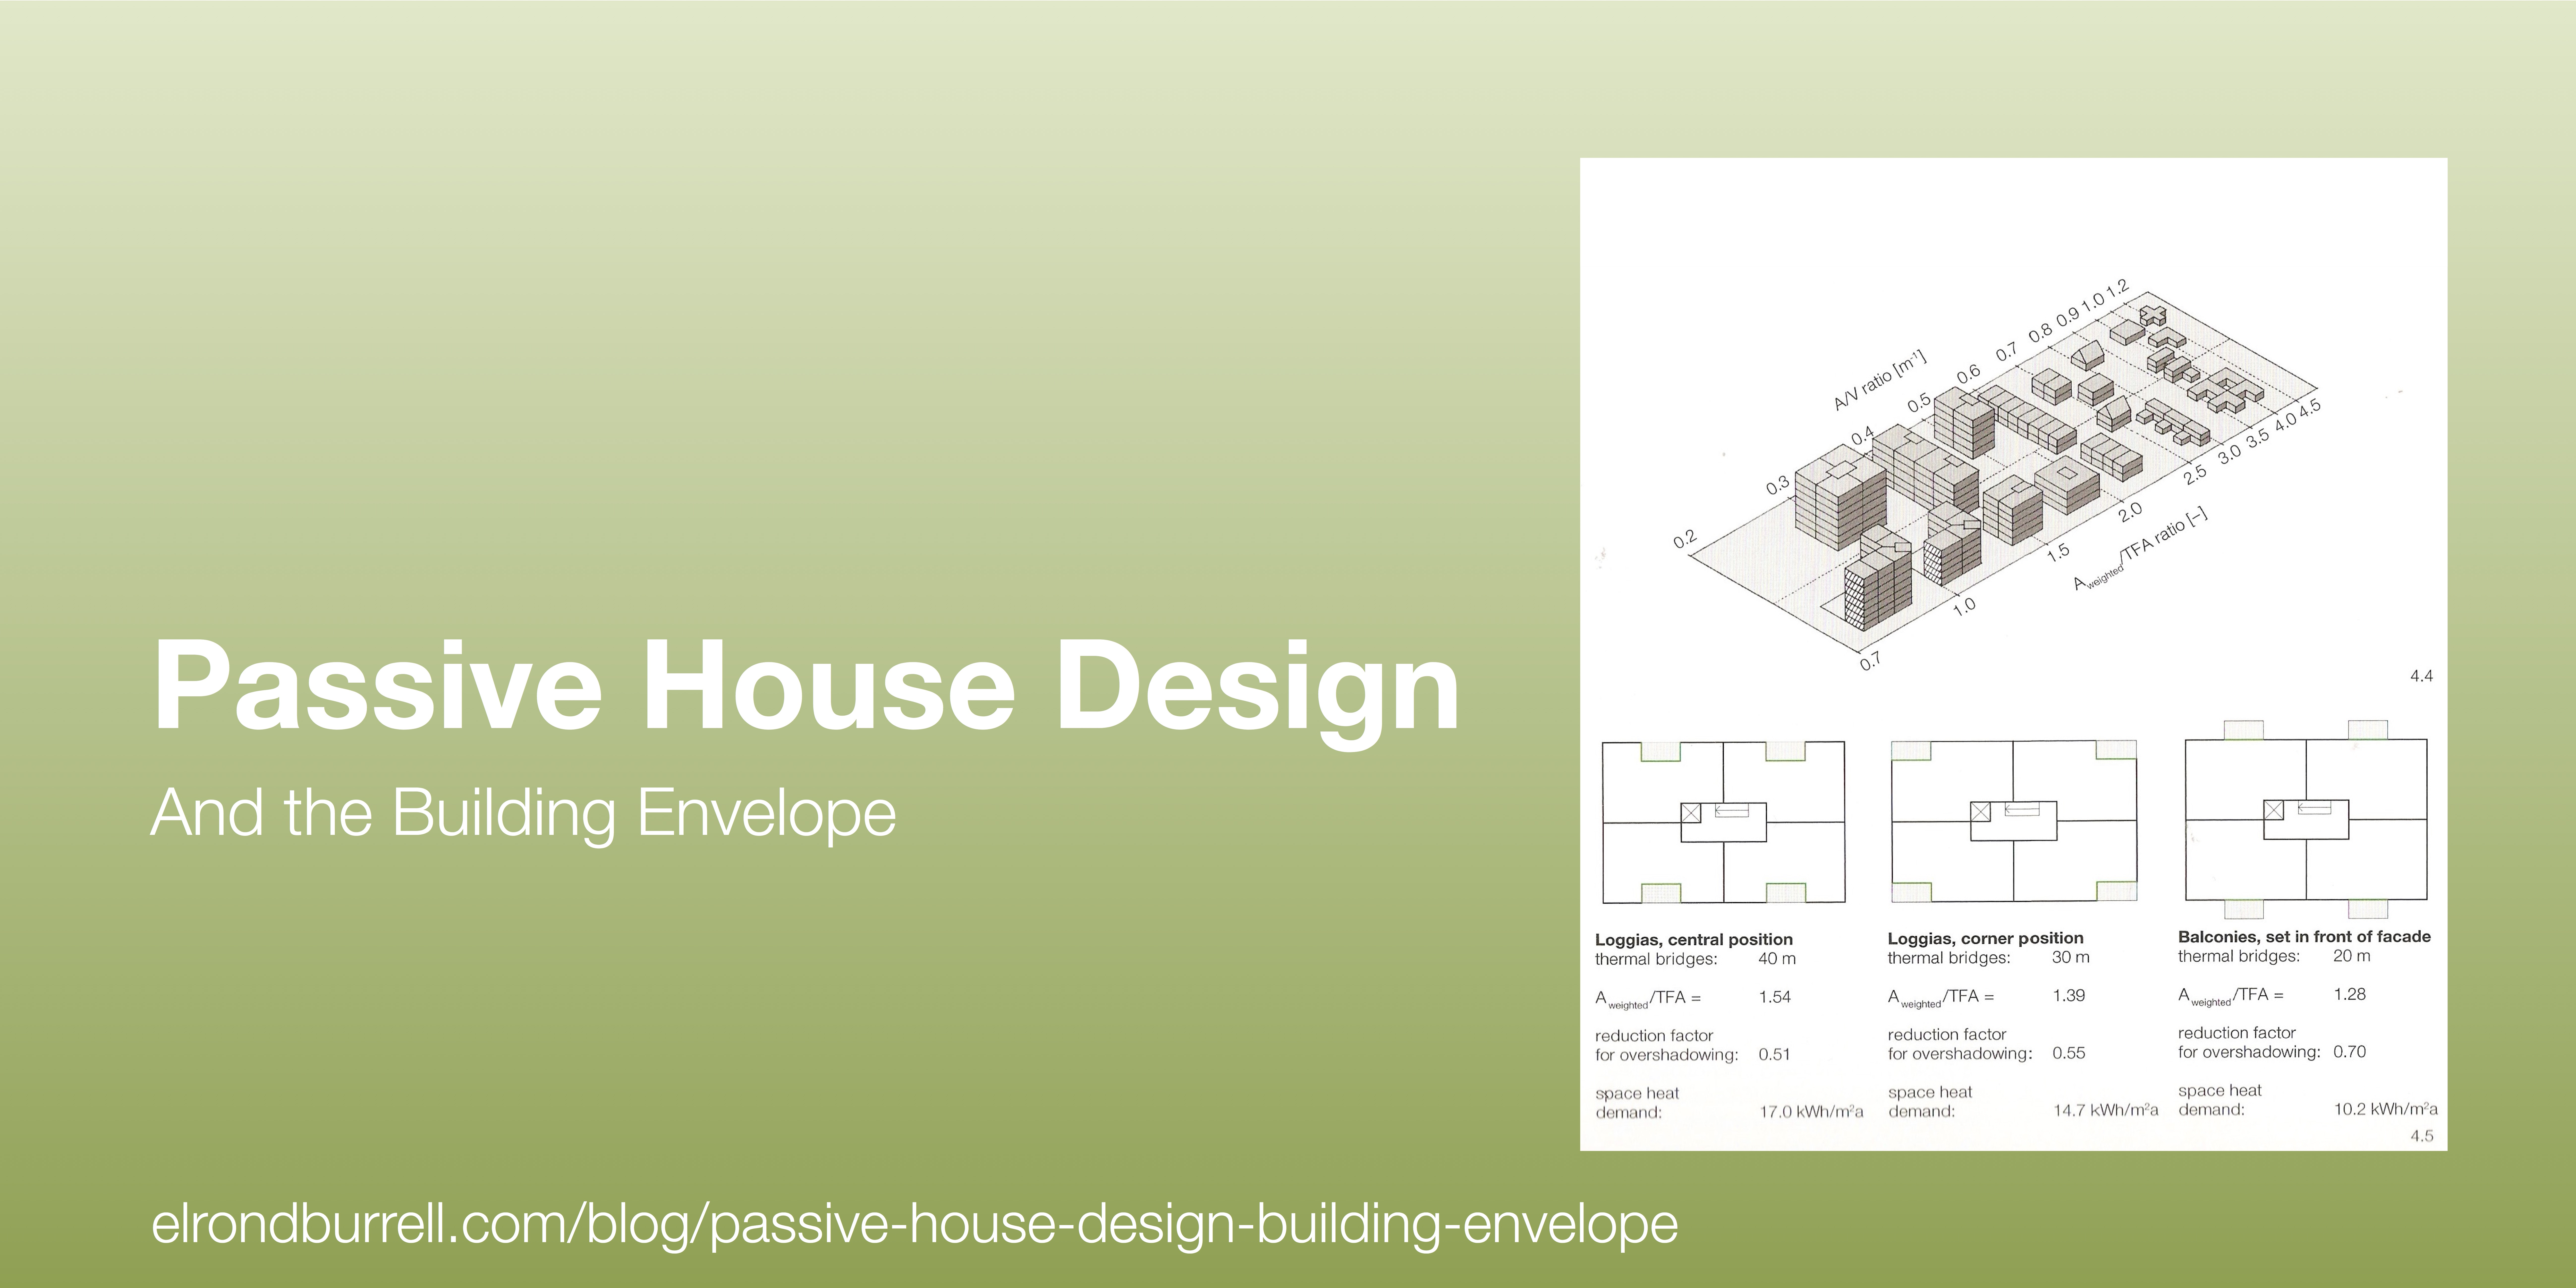 023 passive house design building envelope form factor - Thermal Envelope House Plans